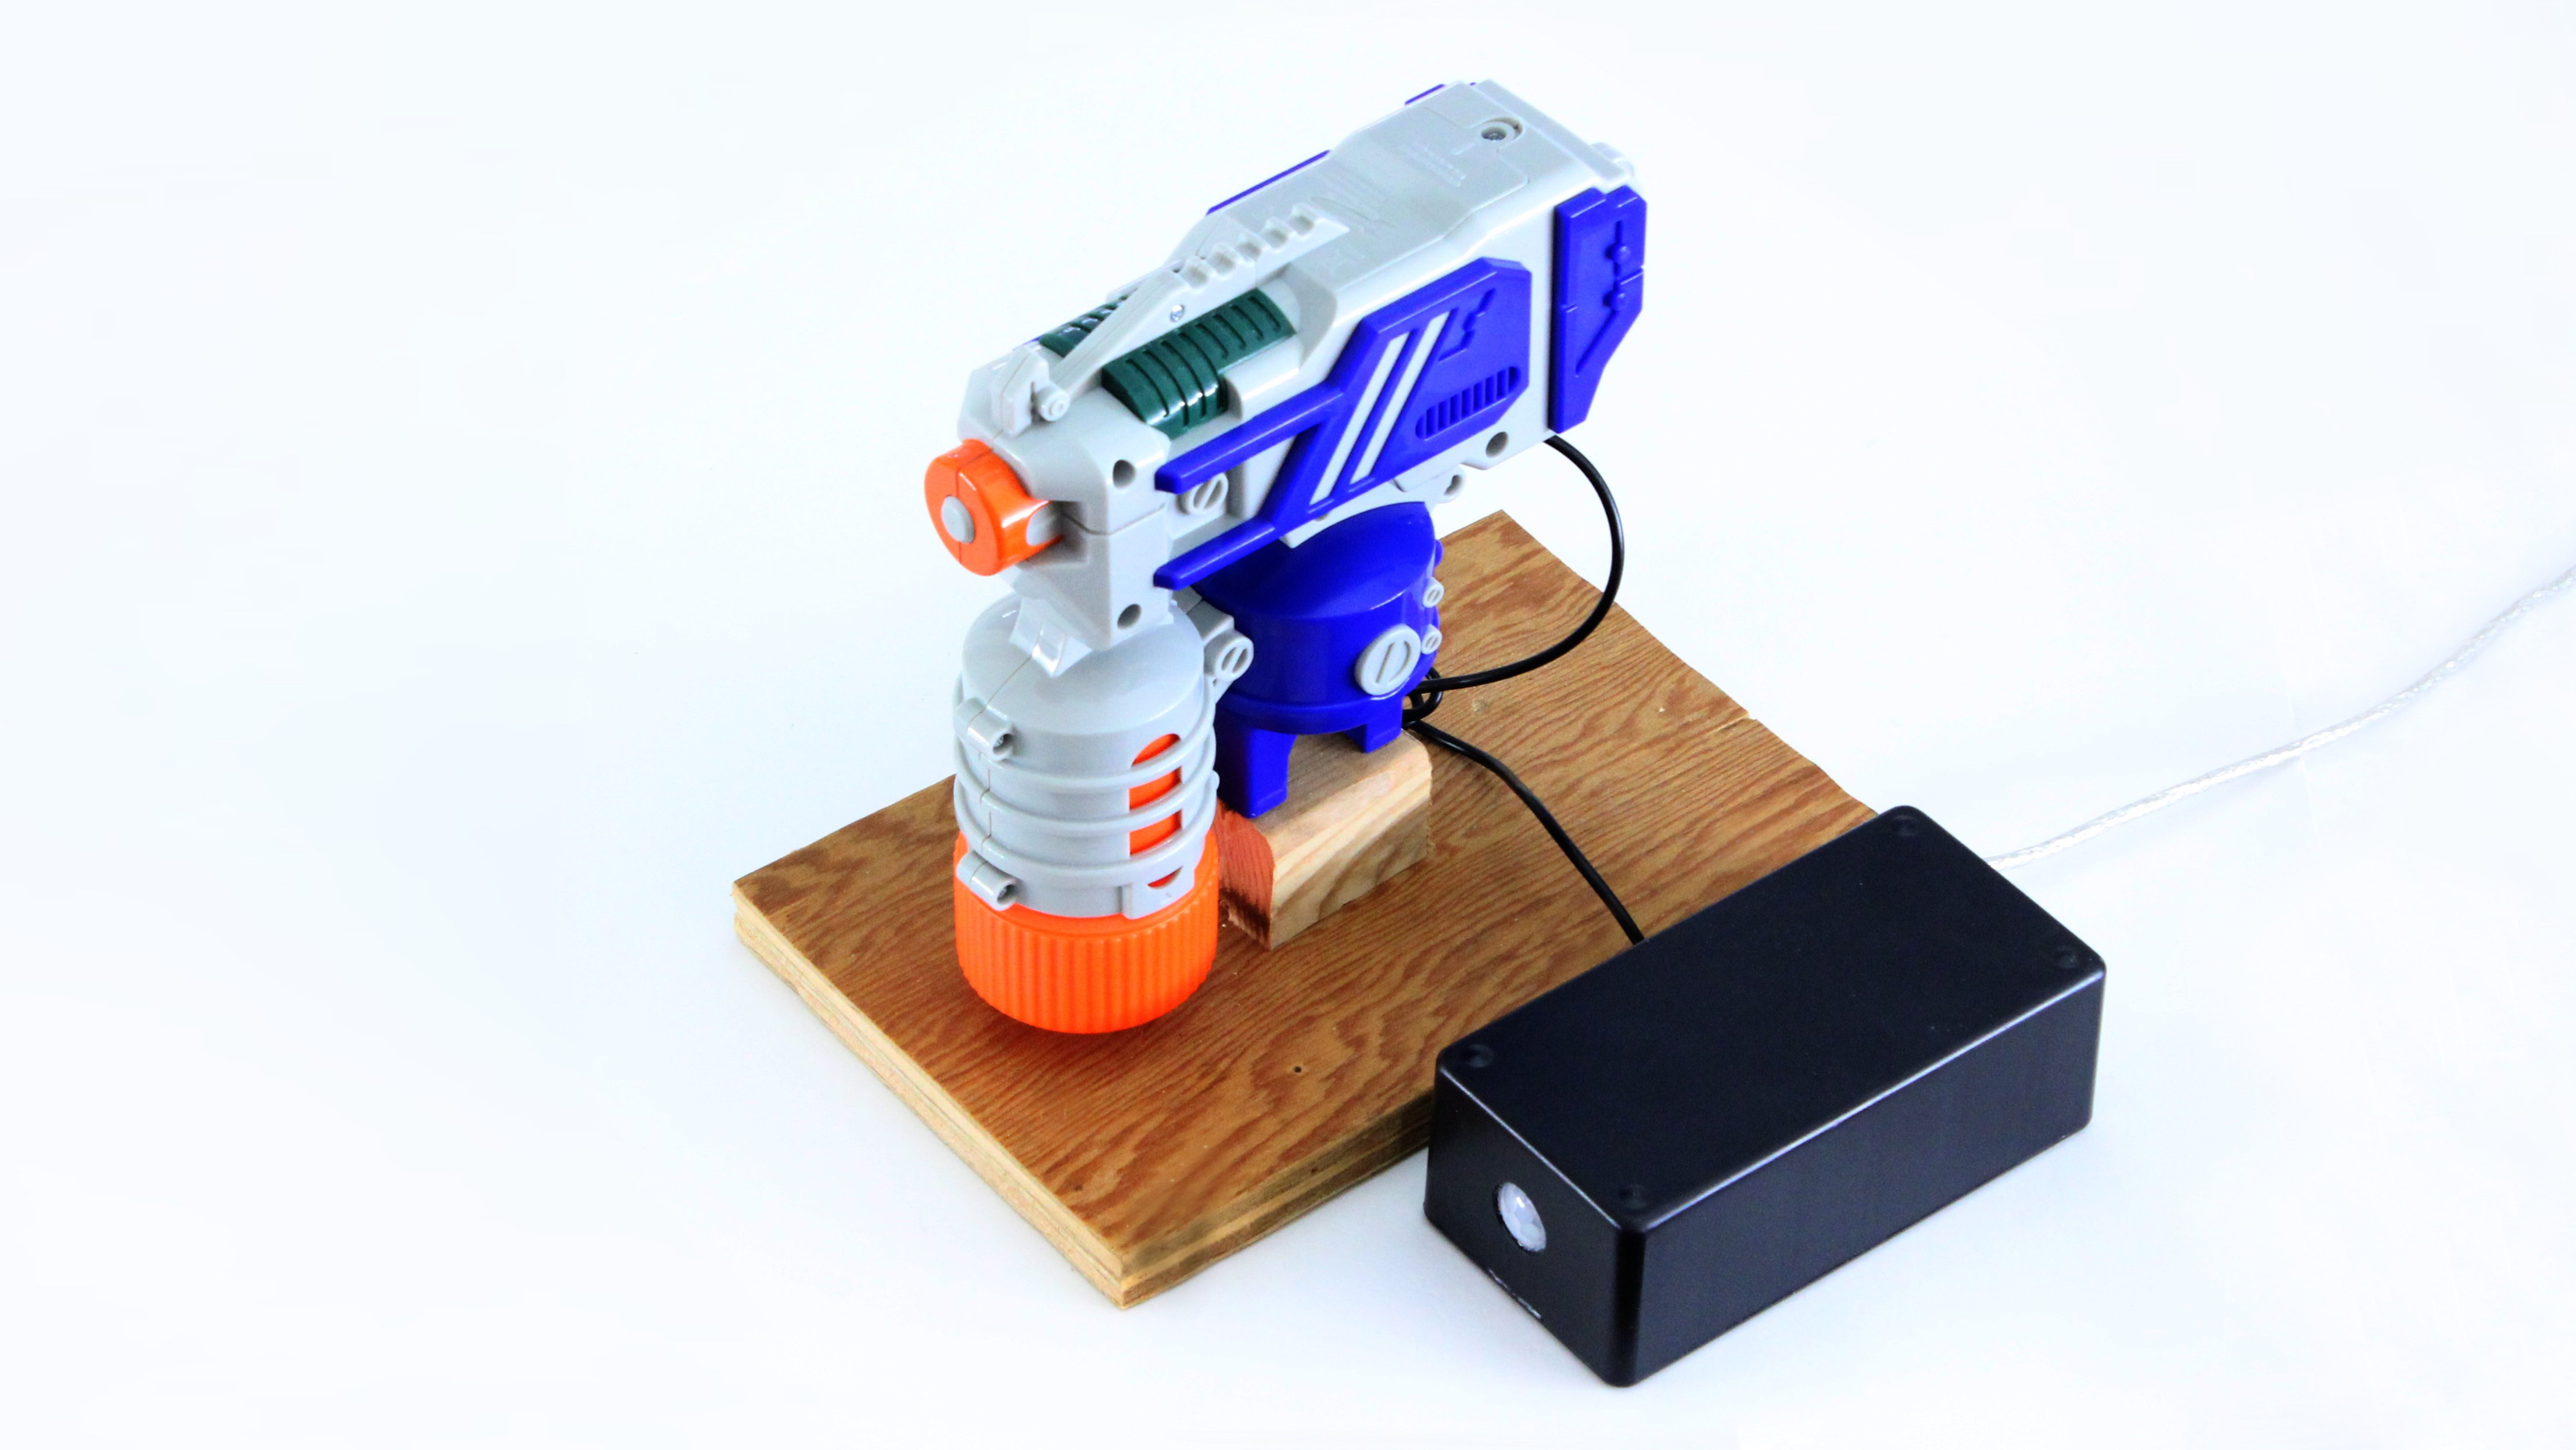 Motion Activated Water Gun Turret Make Microcontroller Based Diy Project For Power Saving Using Pir Sensor In This I Am Going To Show You How Use Motorized Nerf Guns And Automated Turrets That Can Shoot Your Friends